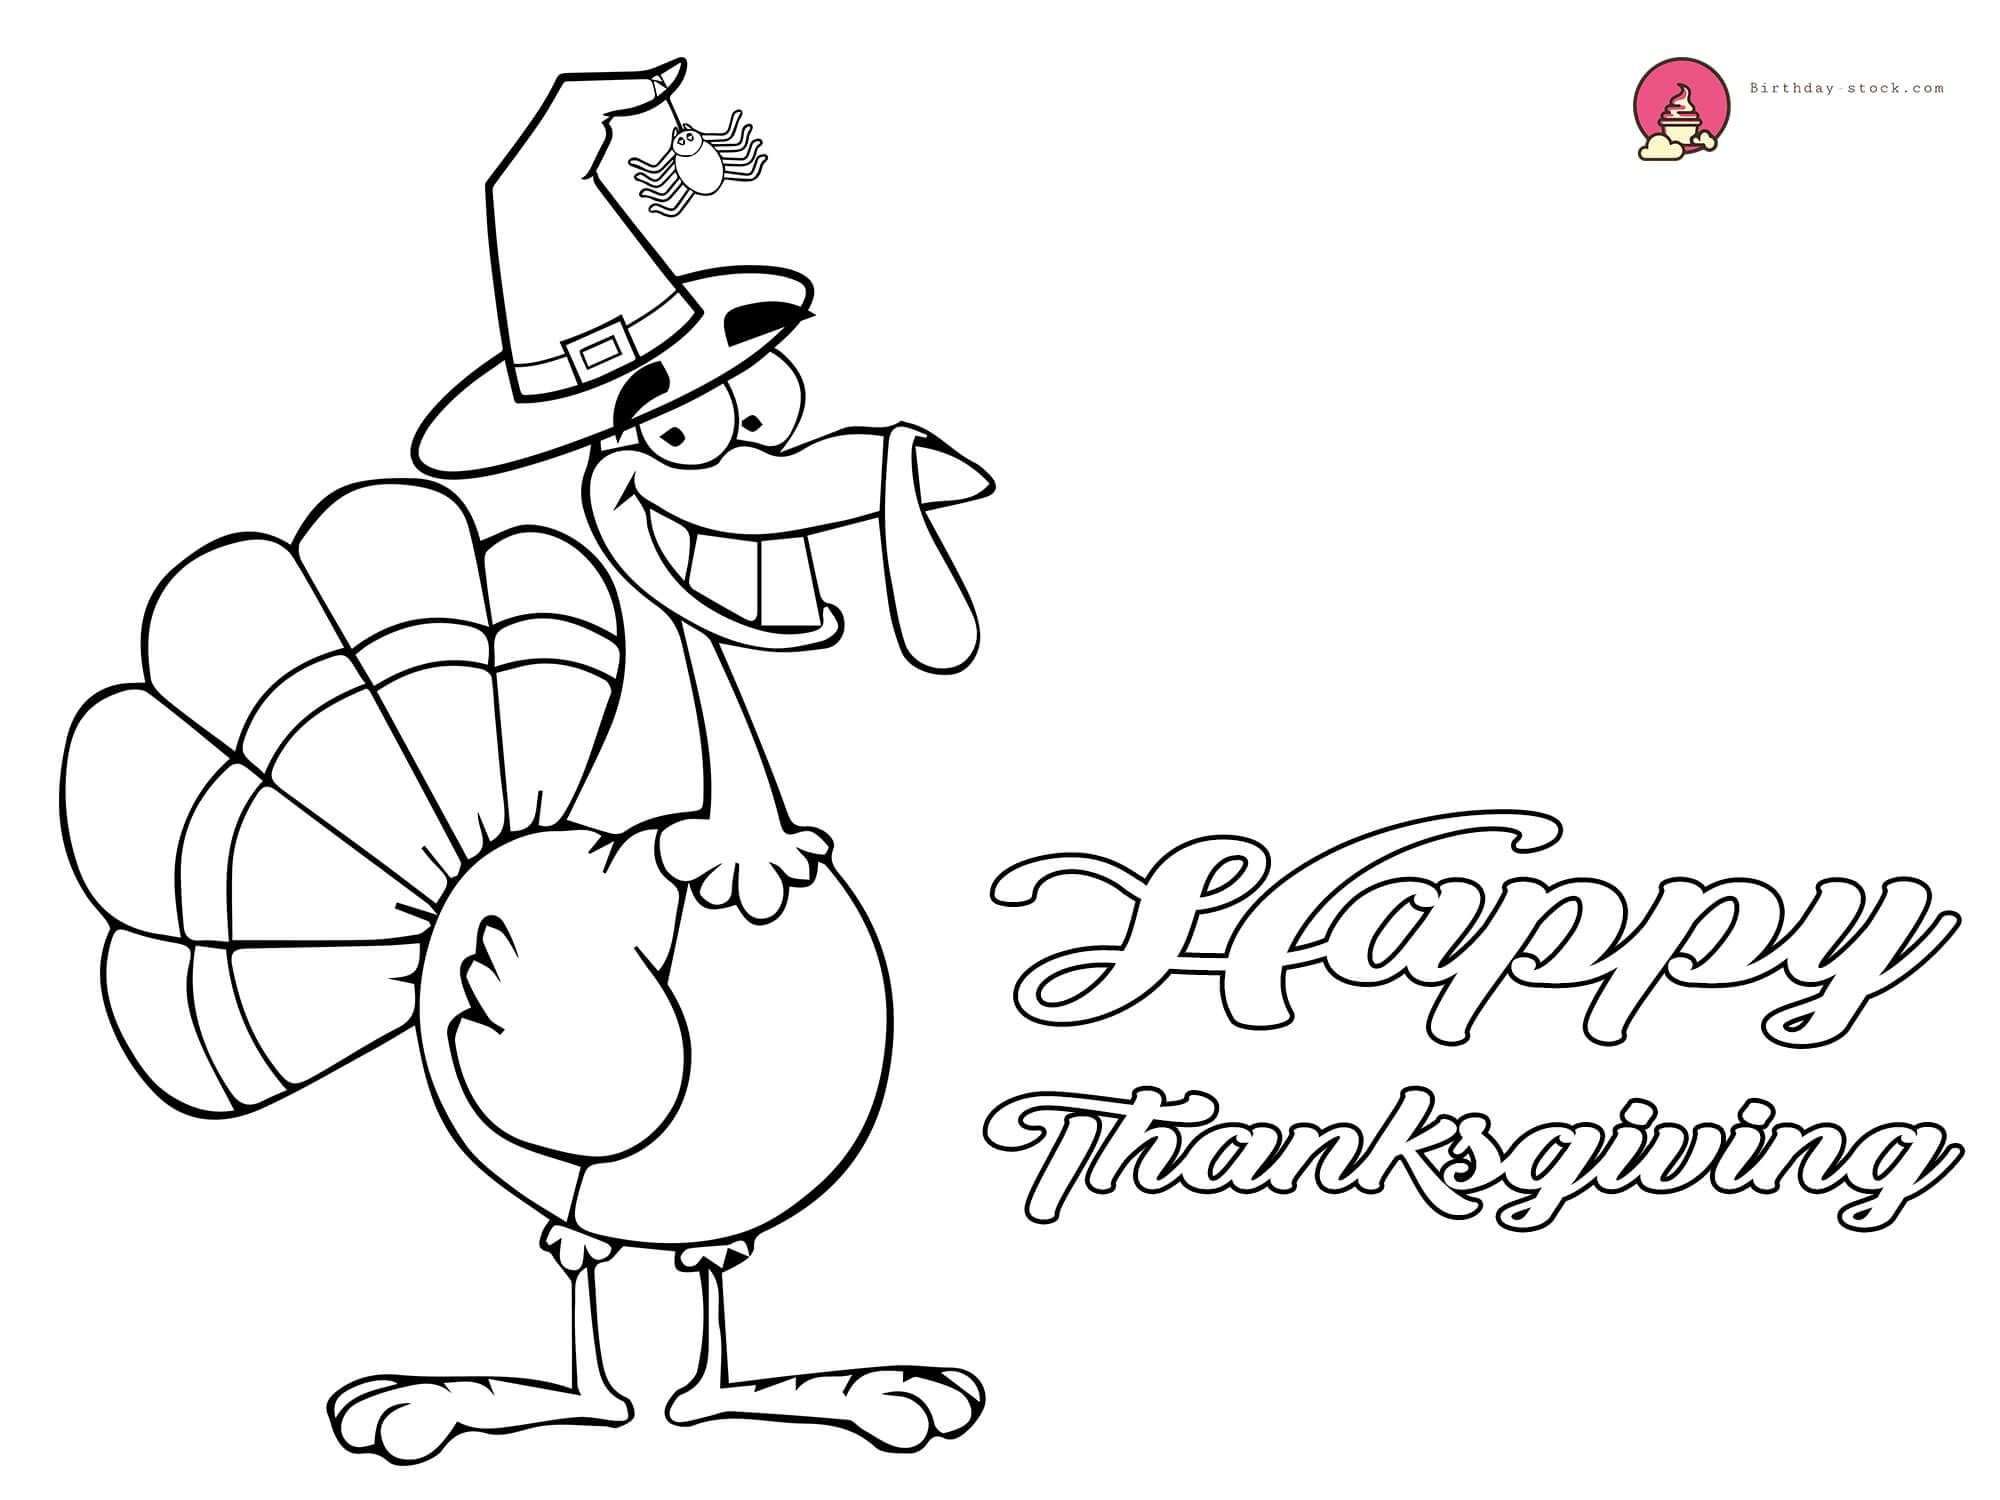 Pin By Kim Parker On Thanksgiving Coloring Pages 2019 Thanksgiving Coloring Pages Thanksgiving Color Free Thanksgiving Coloring Pages